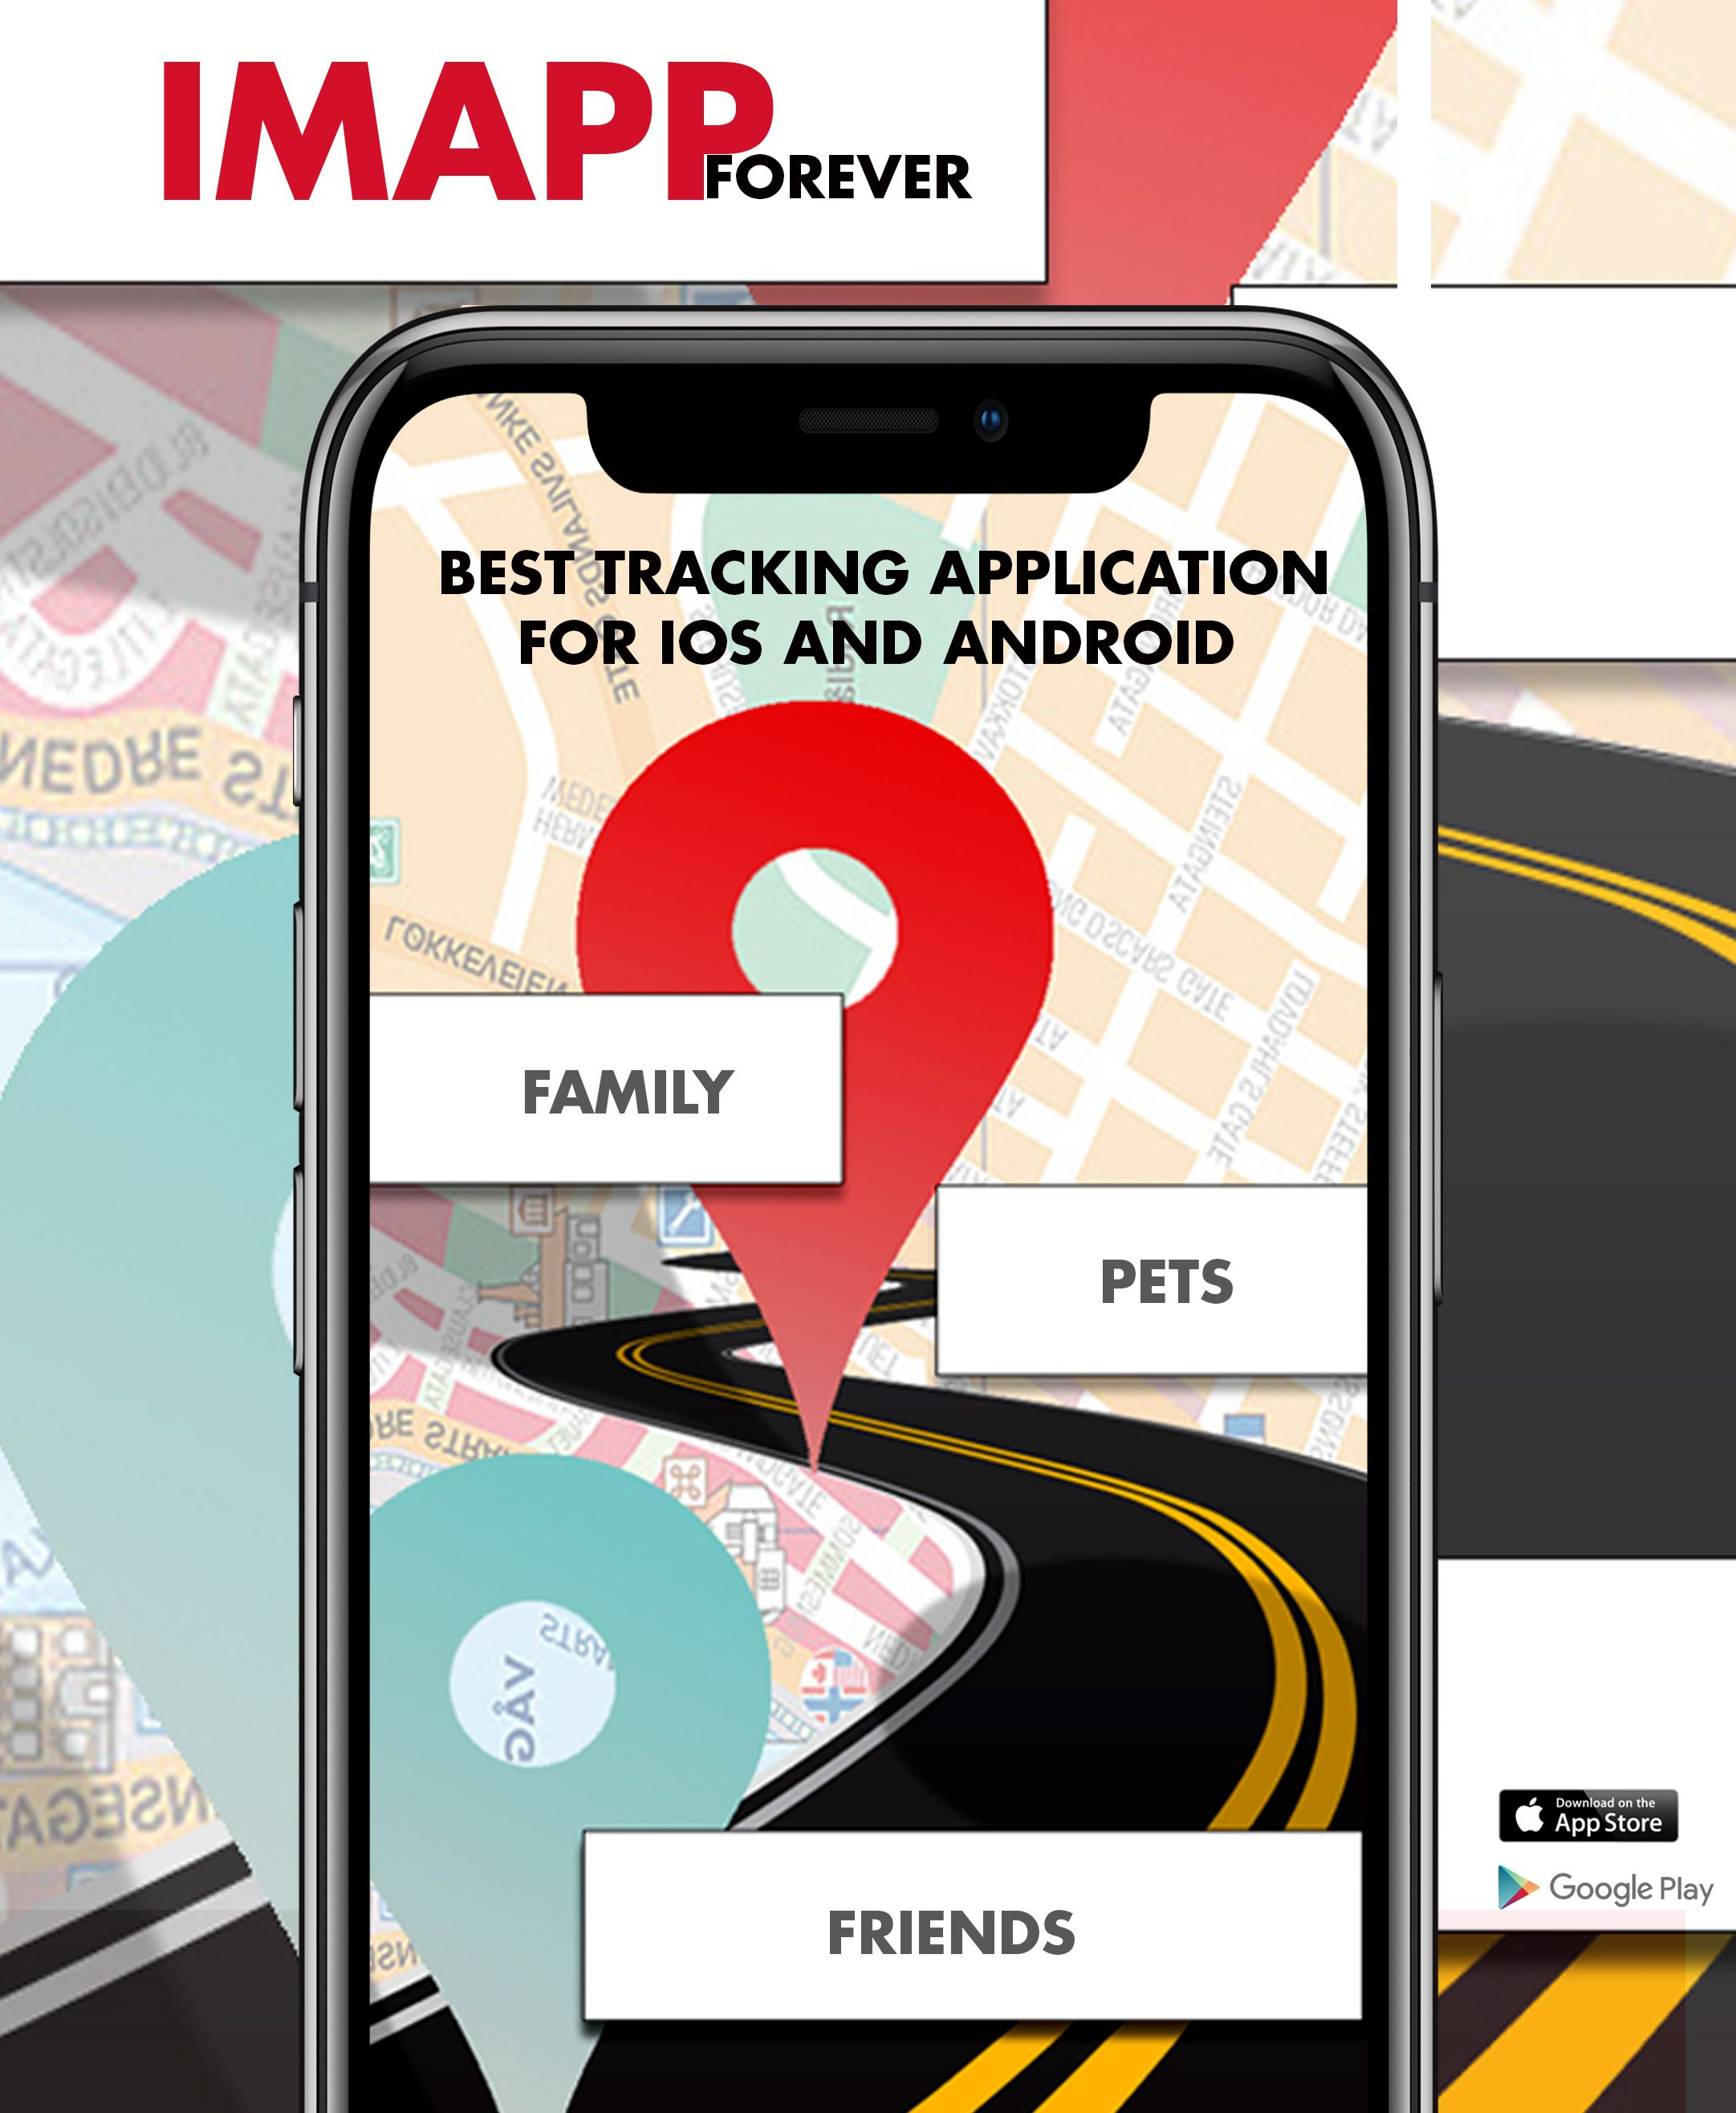 Easy Tracking Mobile Phone Im app, Phone, Find my